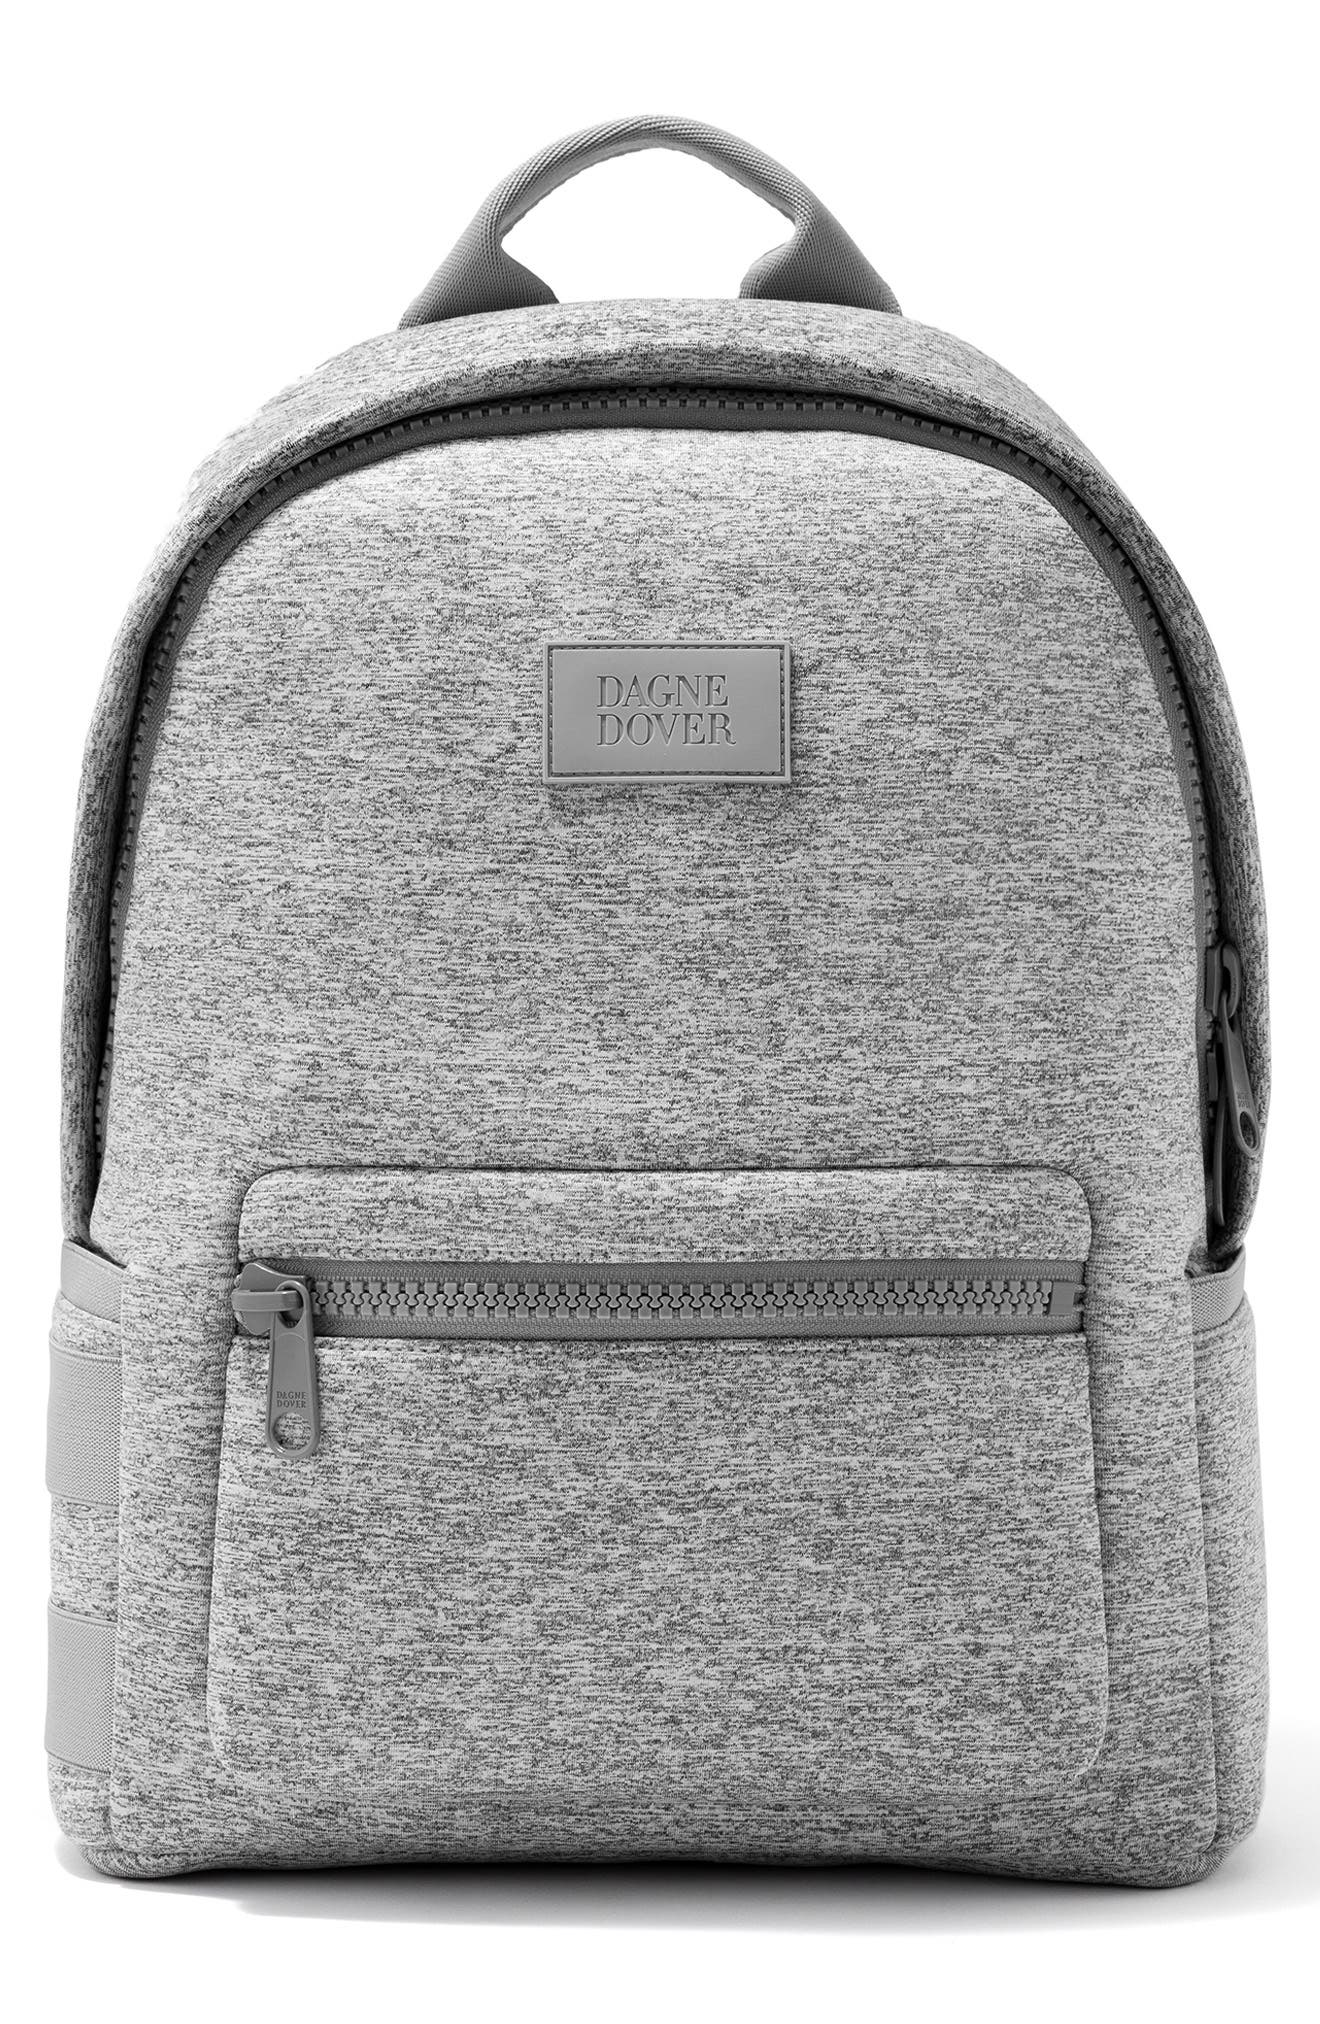 365 Dakota Neoprene Backpack,                             Main thumbnail 1, color,                             HEATHER GREY